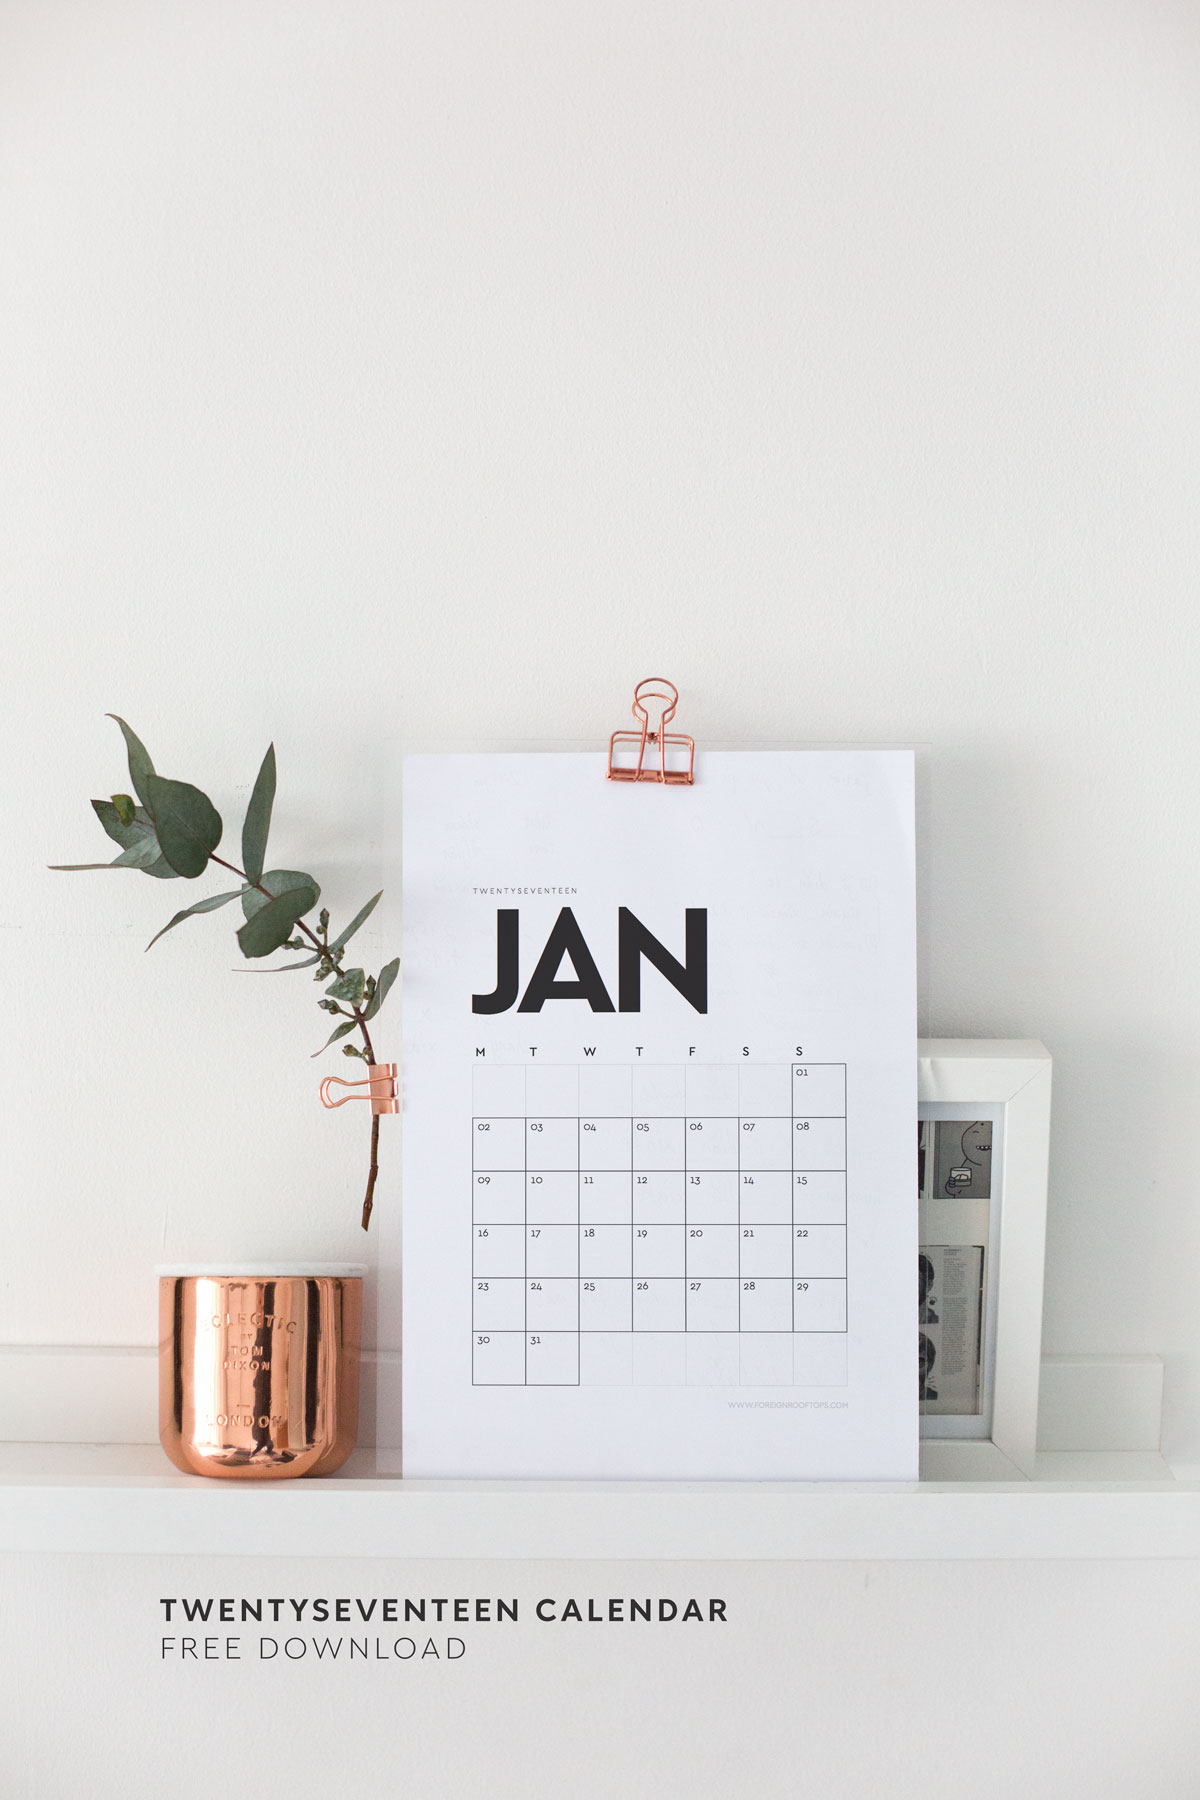 Calendar Design Minimal : Printable wall calendar free download